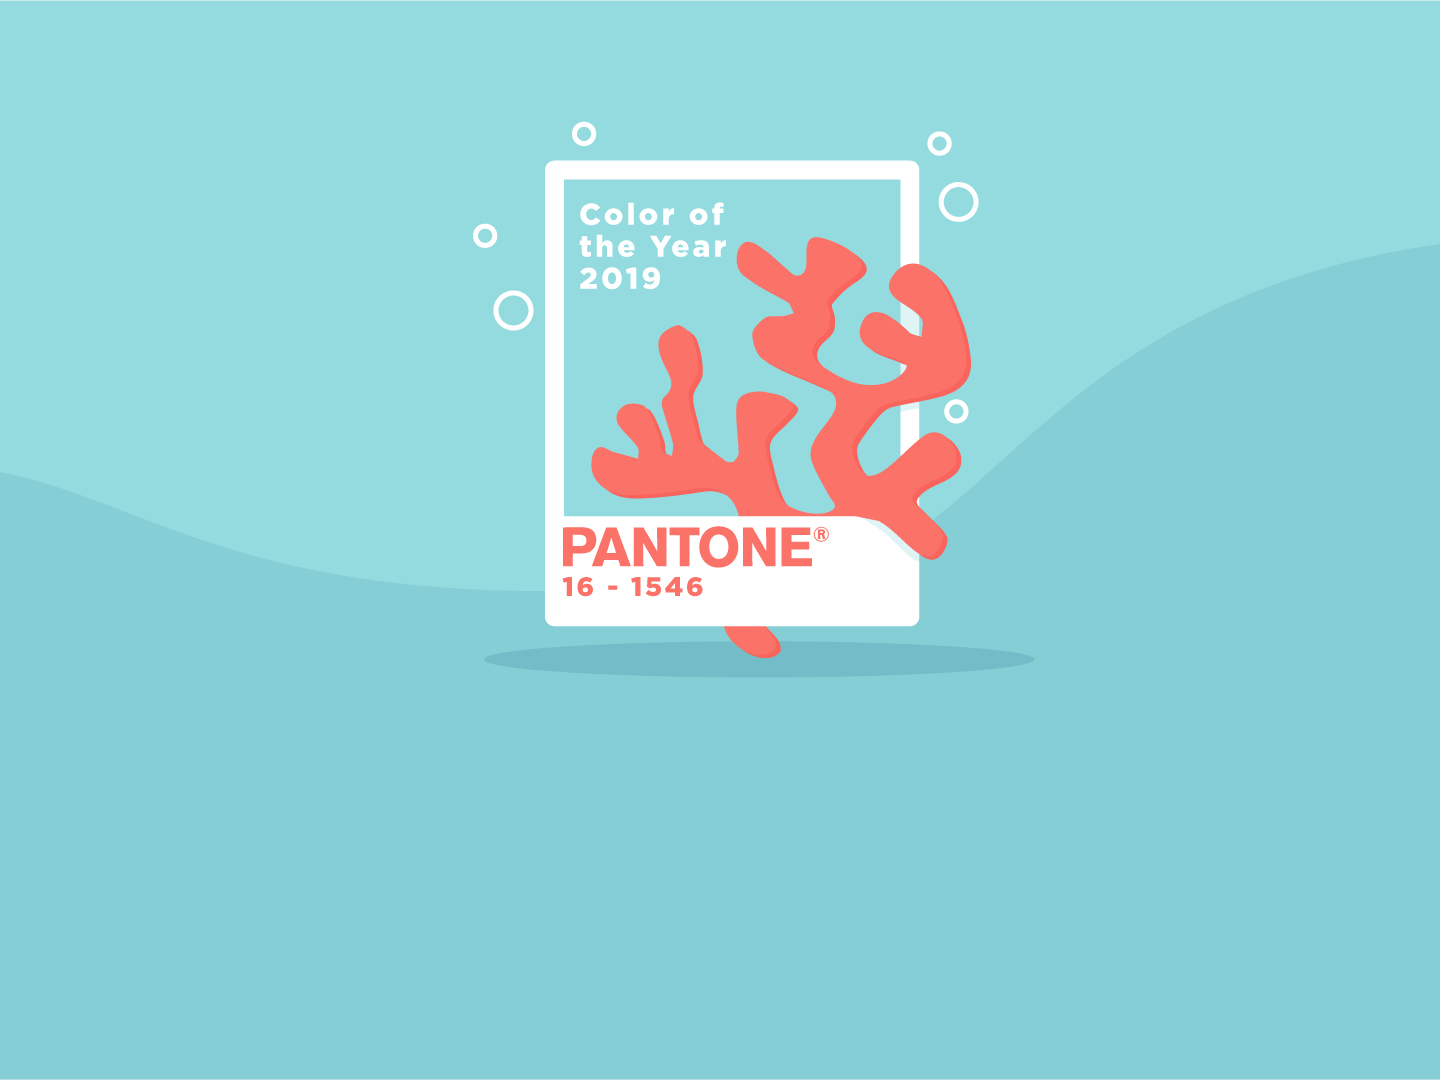 Pantone color of the year header image. Living Coral